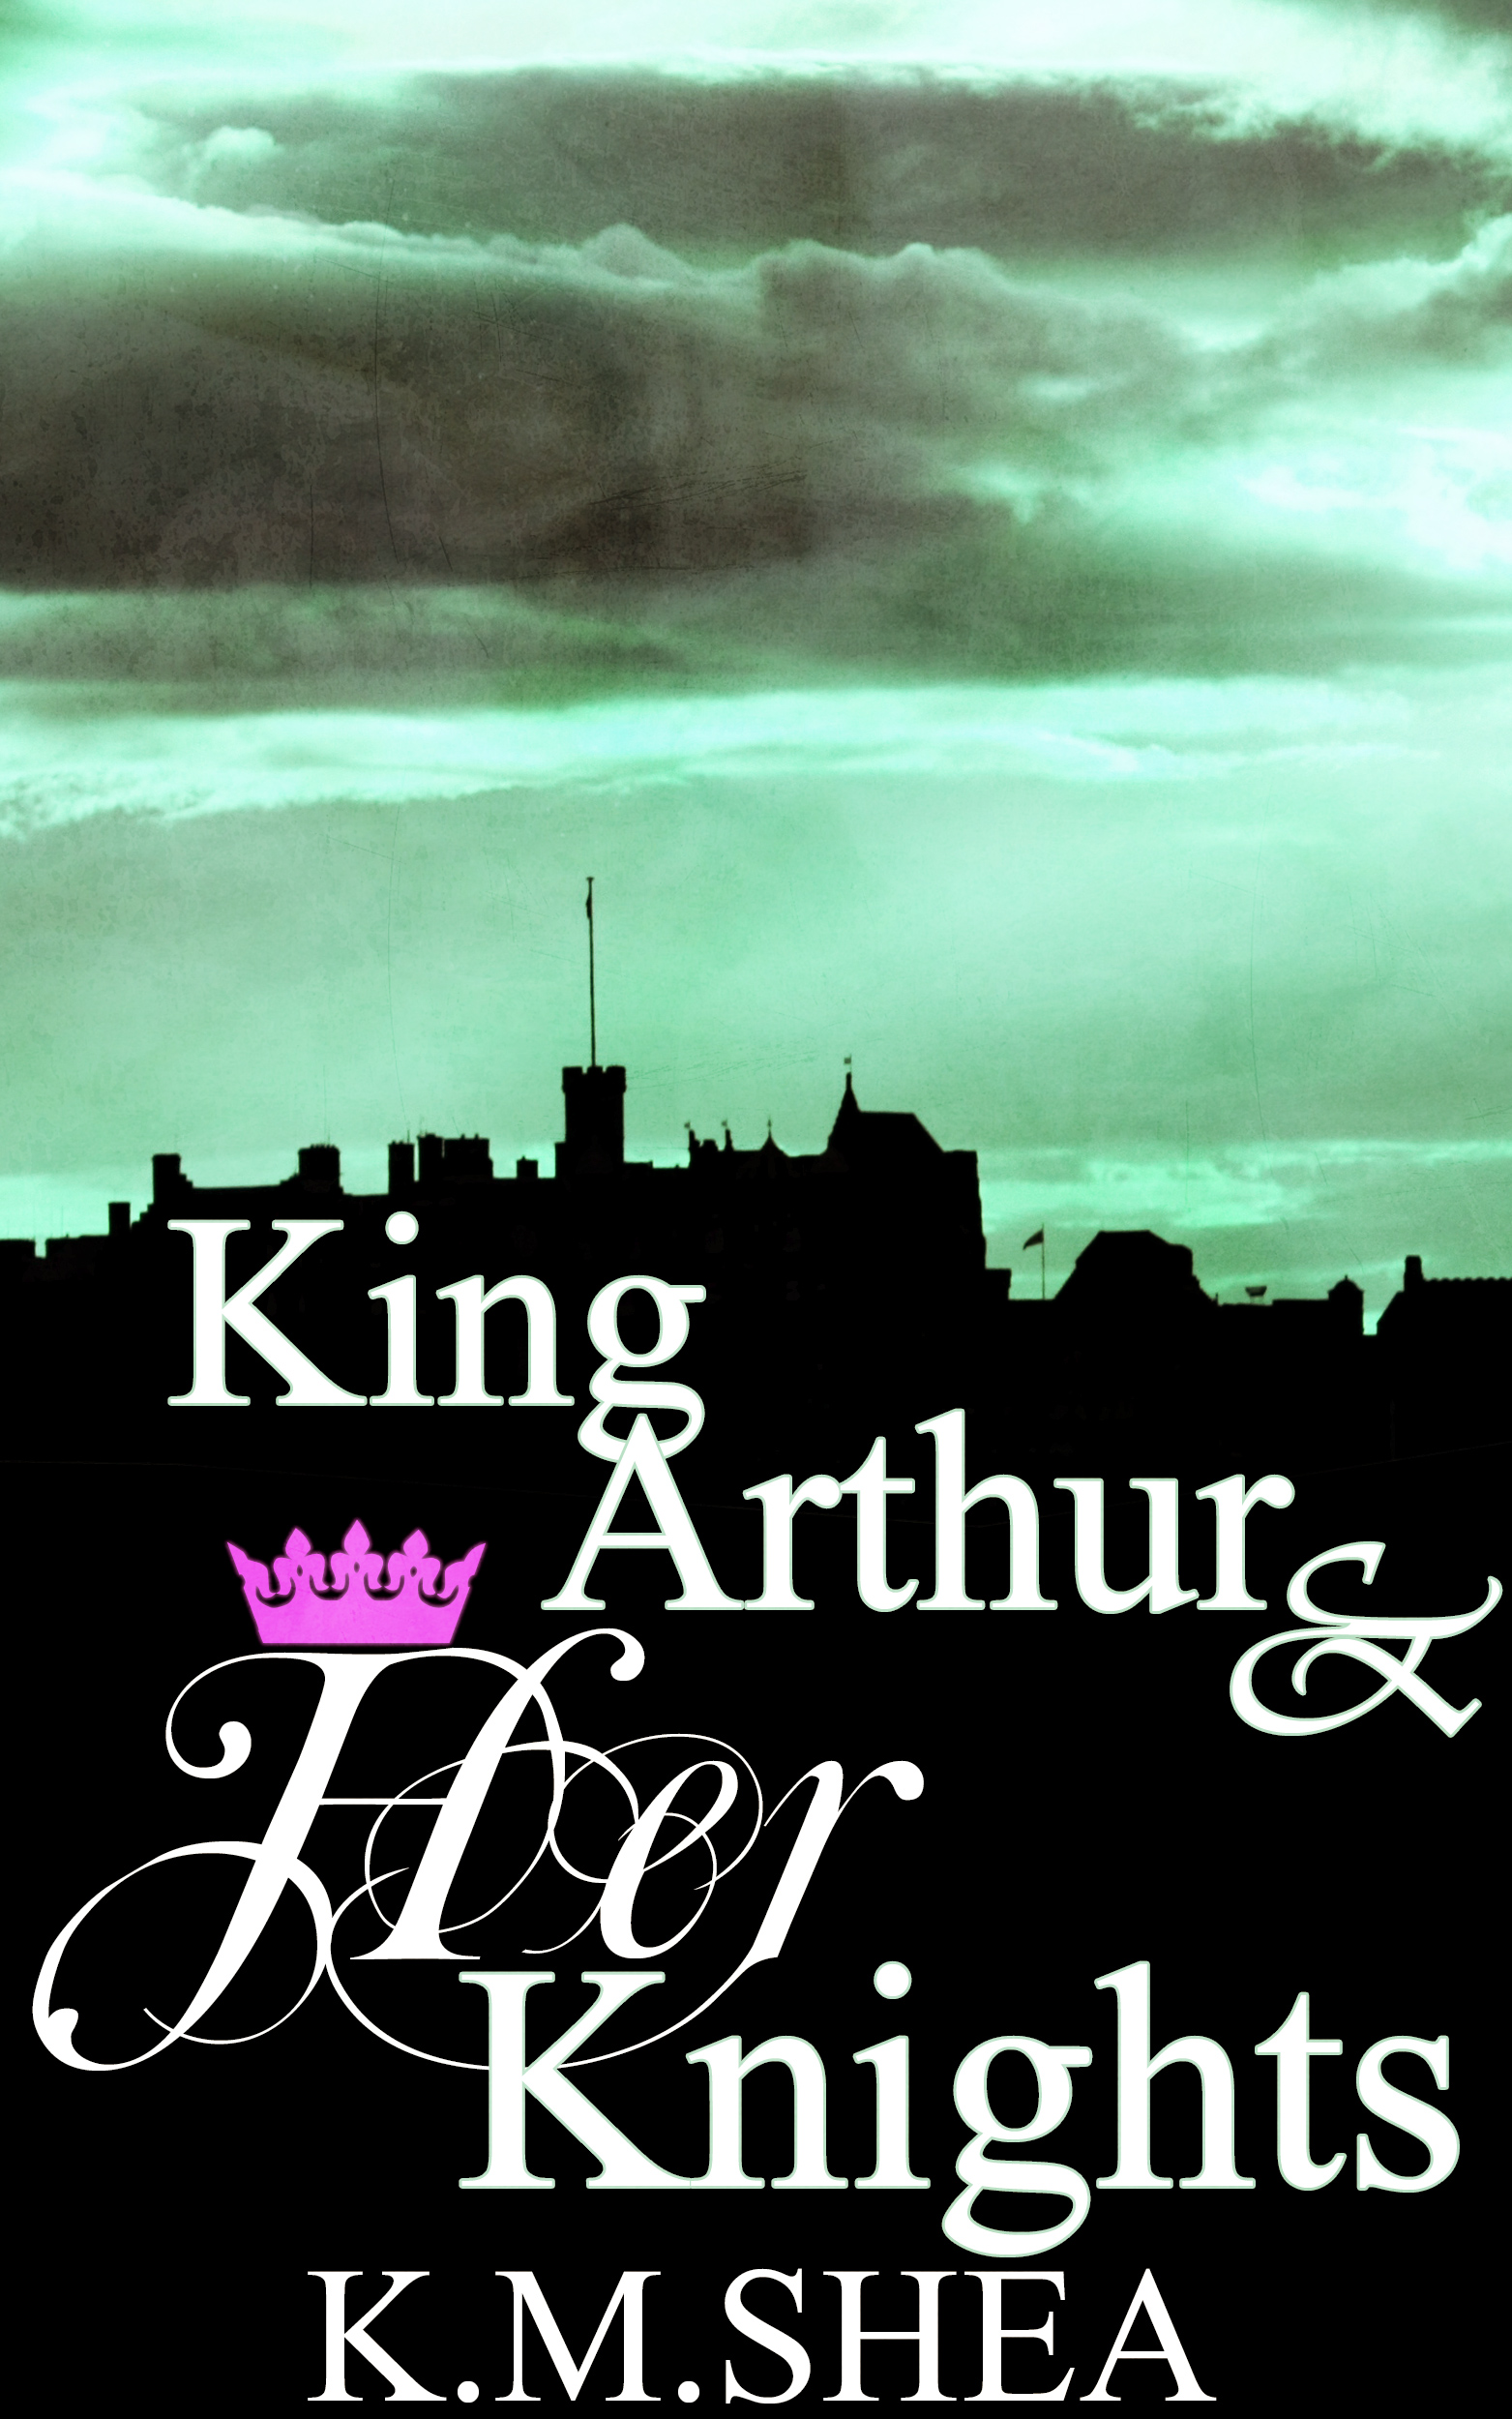 Image result for king arthur's and her knights km shea images